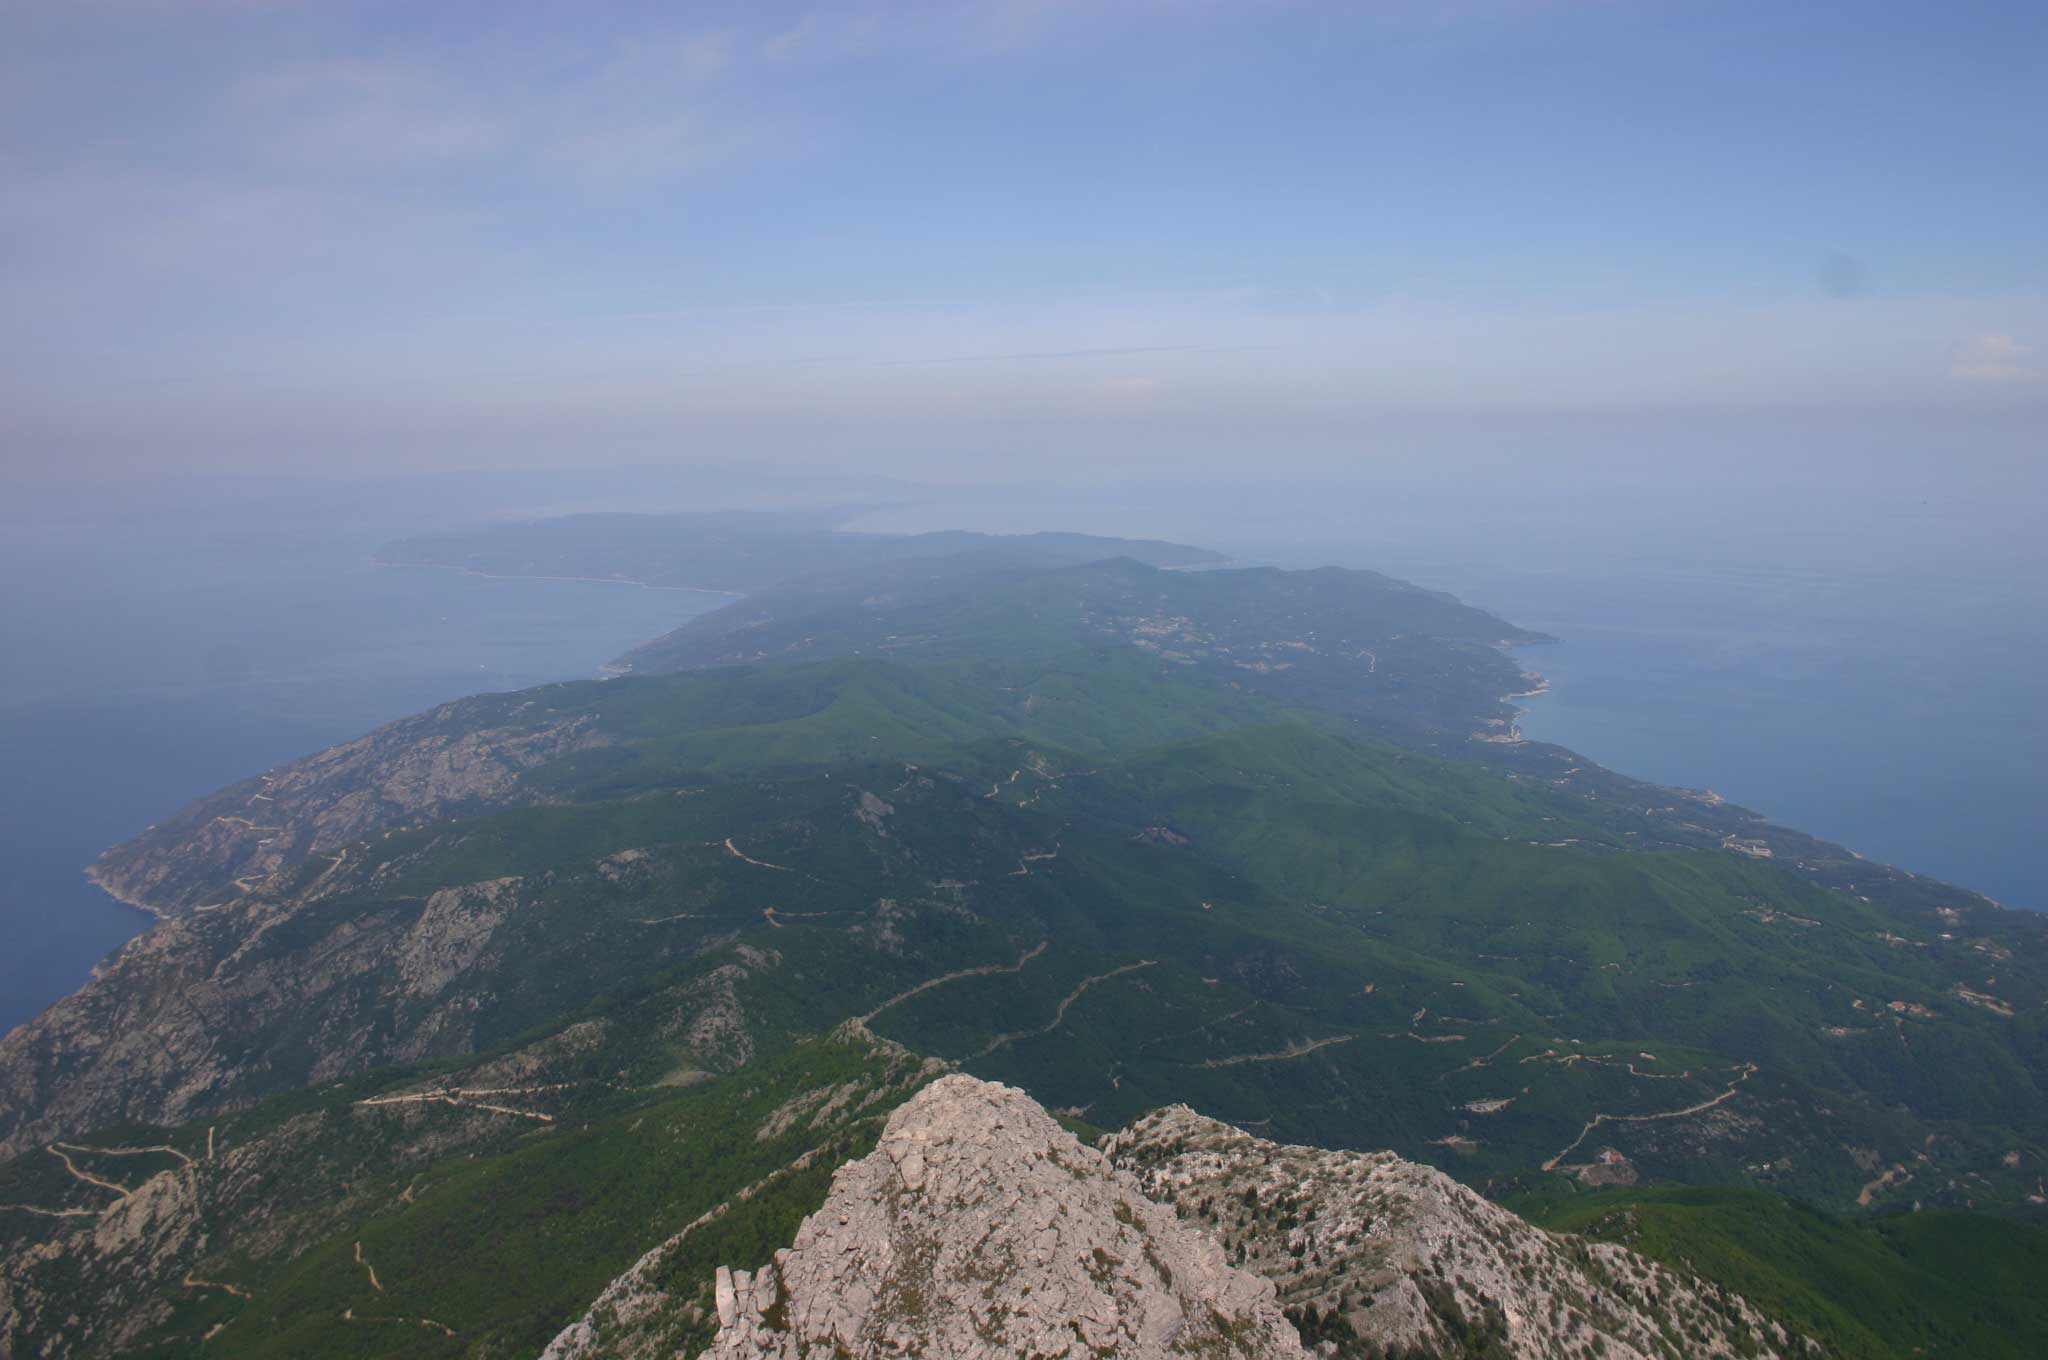 Mount Athos: Mt Athos - Along the Peninsula From Mt Athos - © William Mackesy